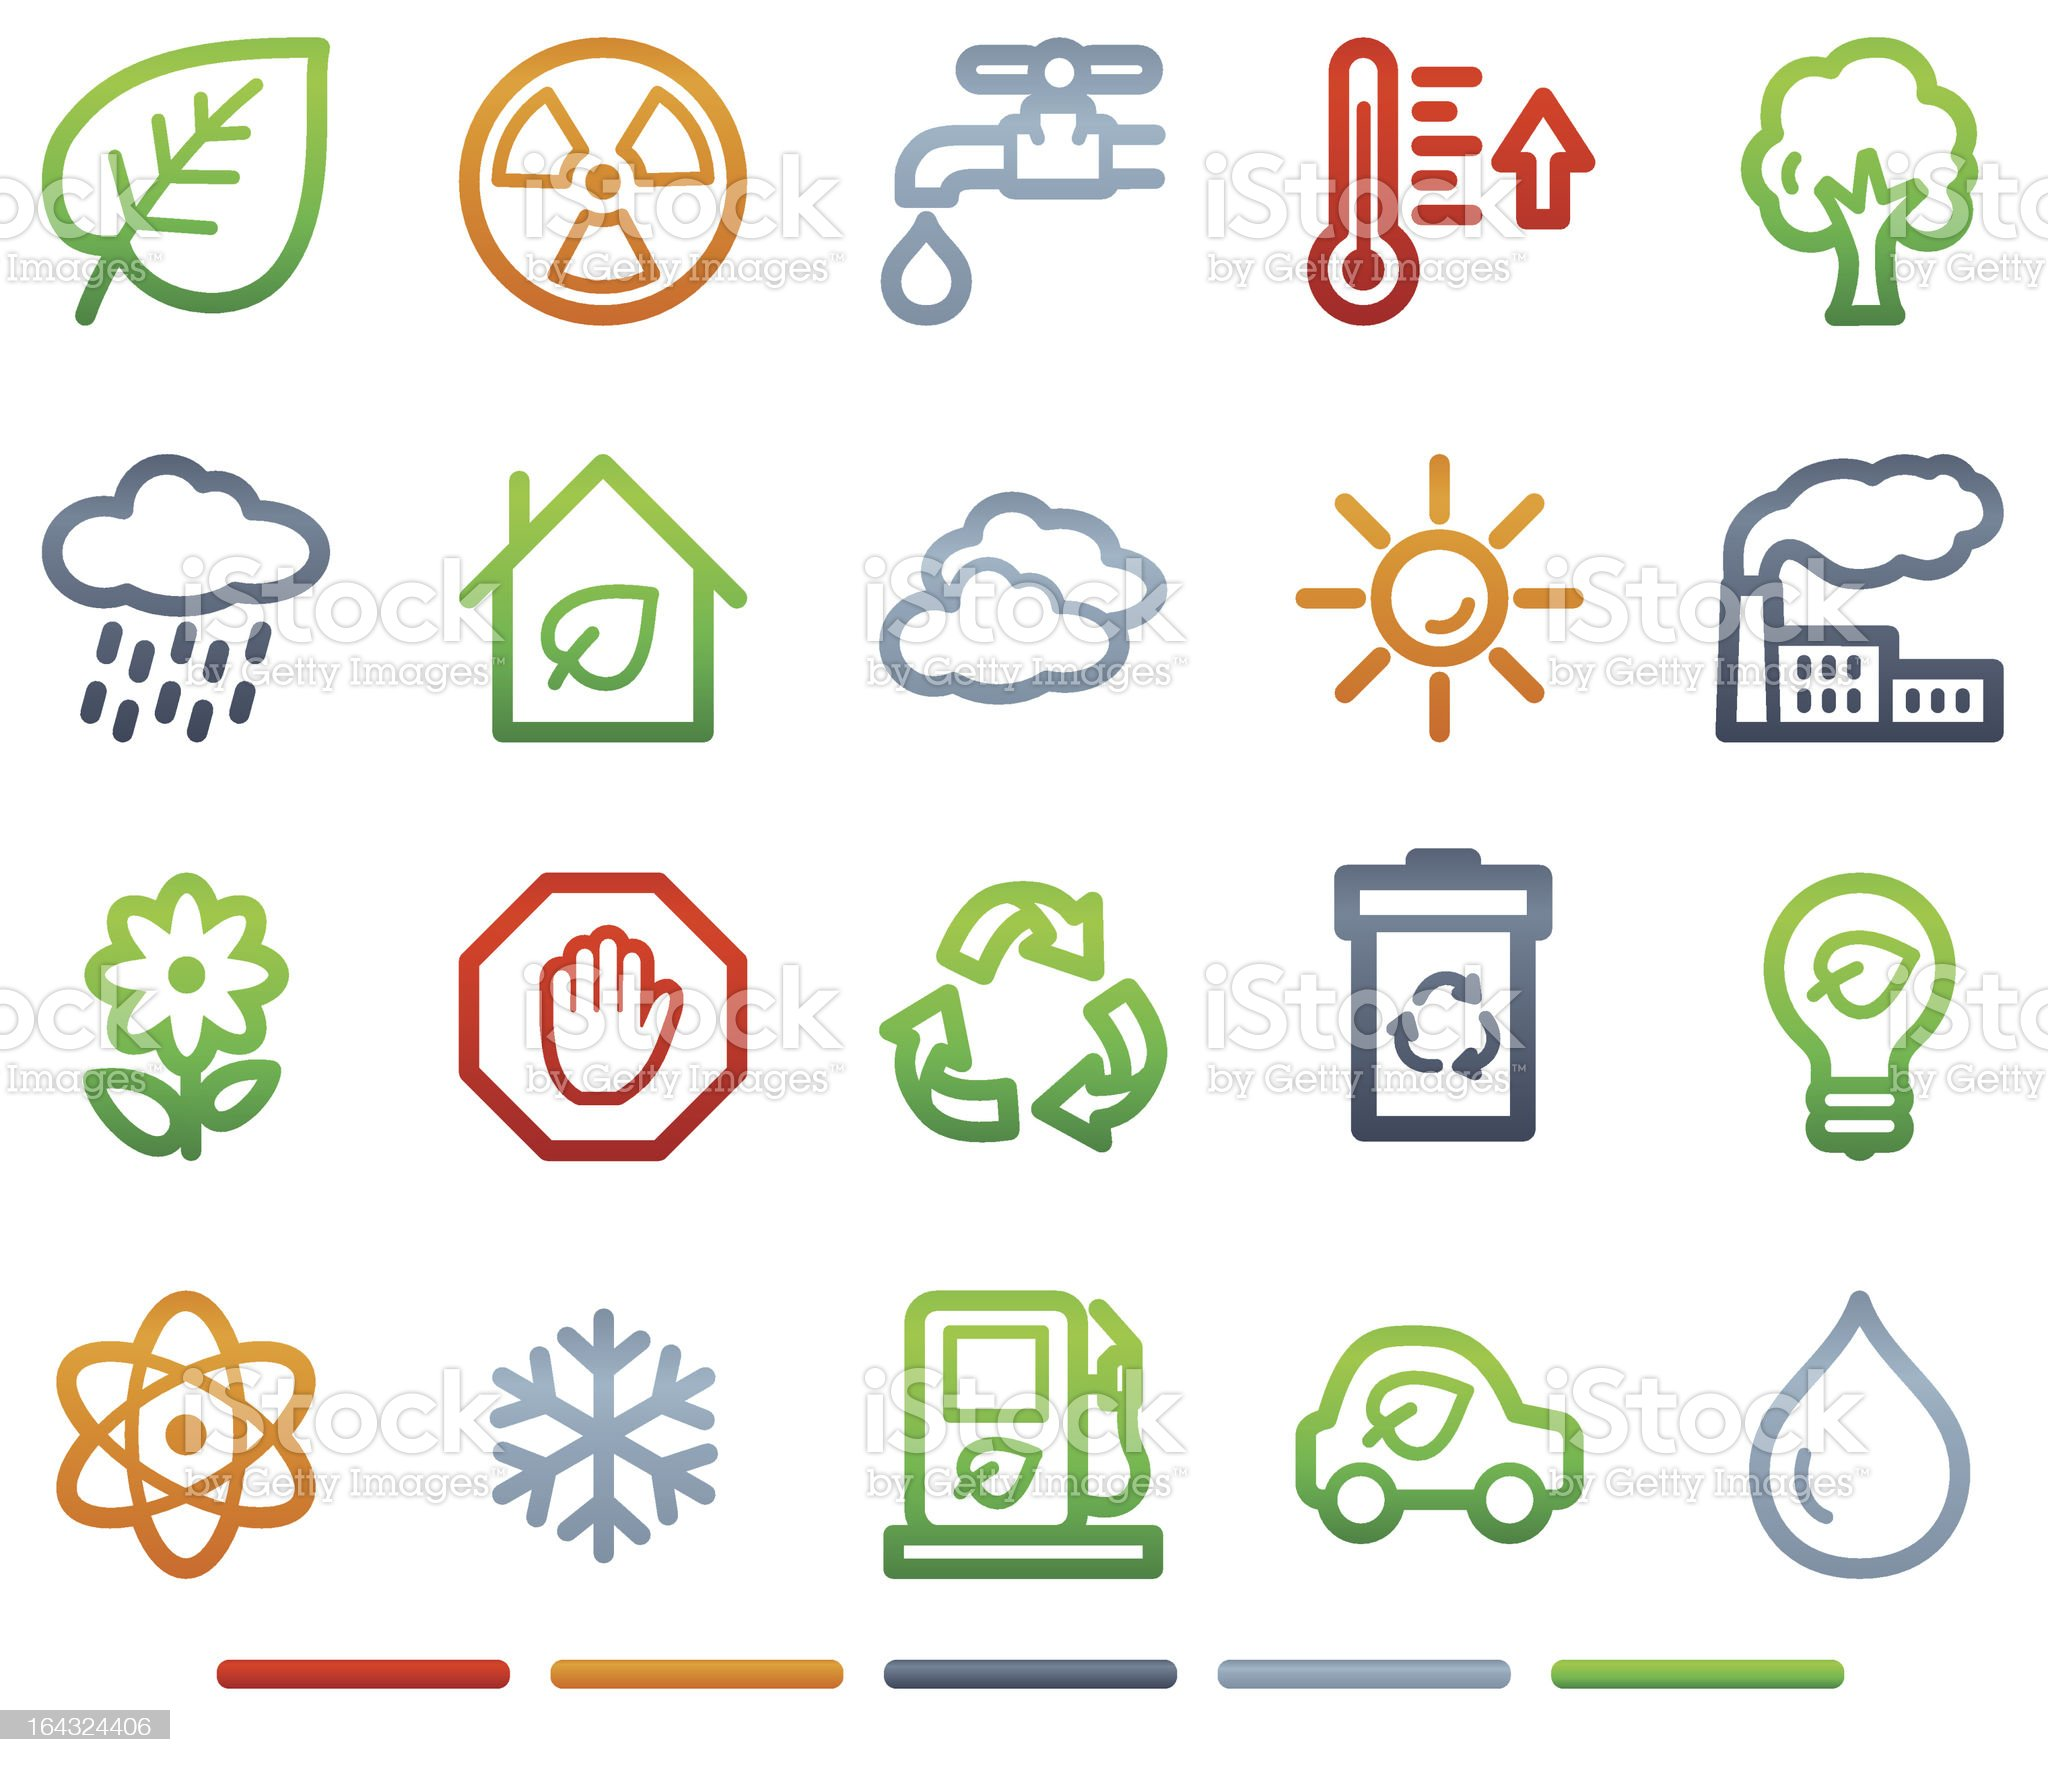 Ecology web icons, colour symbols series royalty-free stock vector art